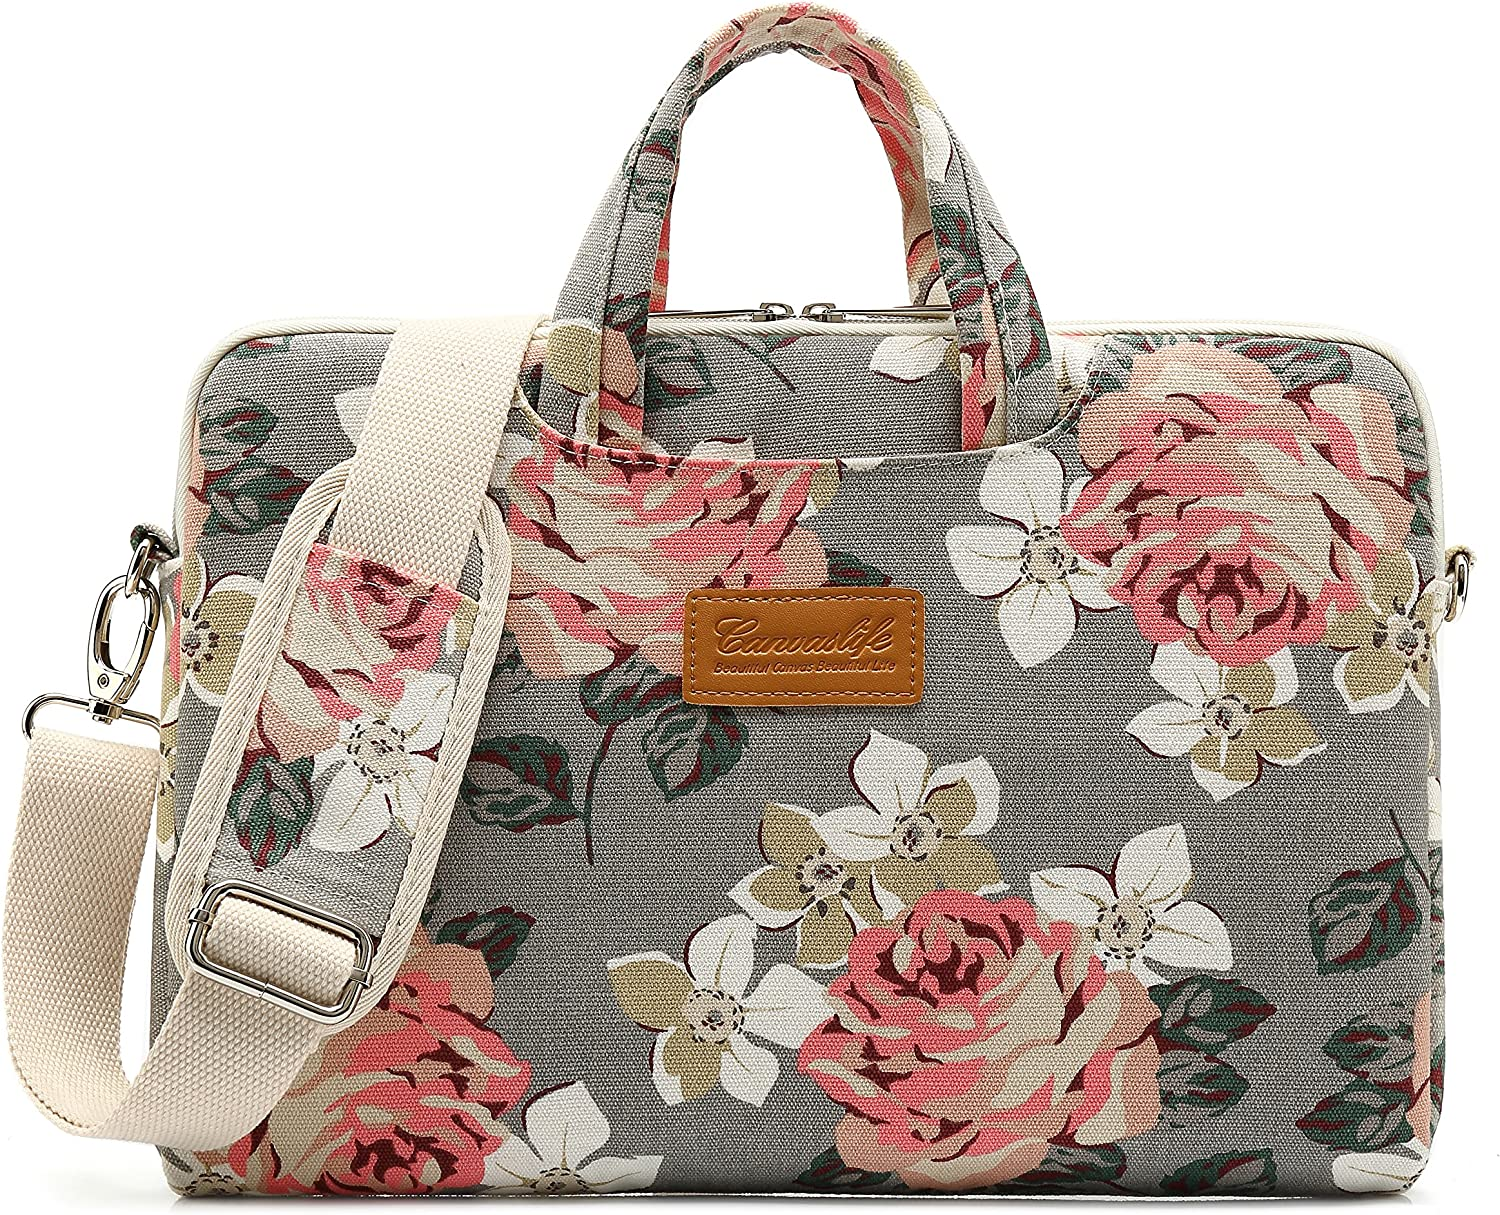 Canvaslife Grey Rose Pattern 15 inch Waterproof Laptop Shoulder Messenger Bag for 14 inch to15.6 inch Laptop and MacBook Pro 15 Laptop Case